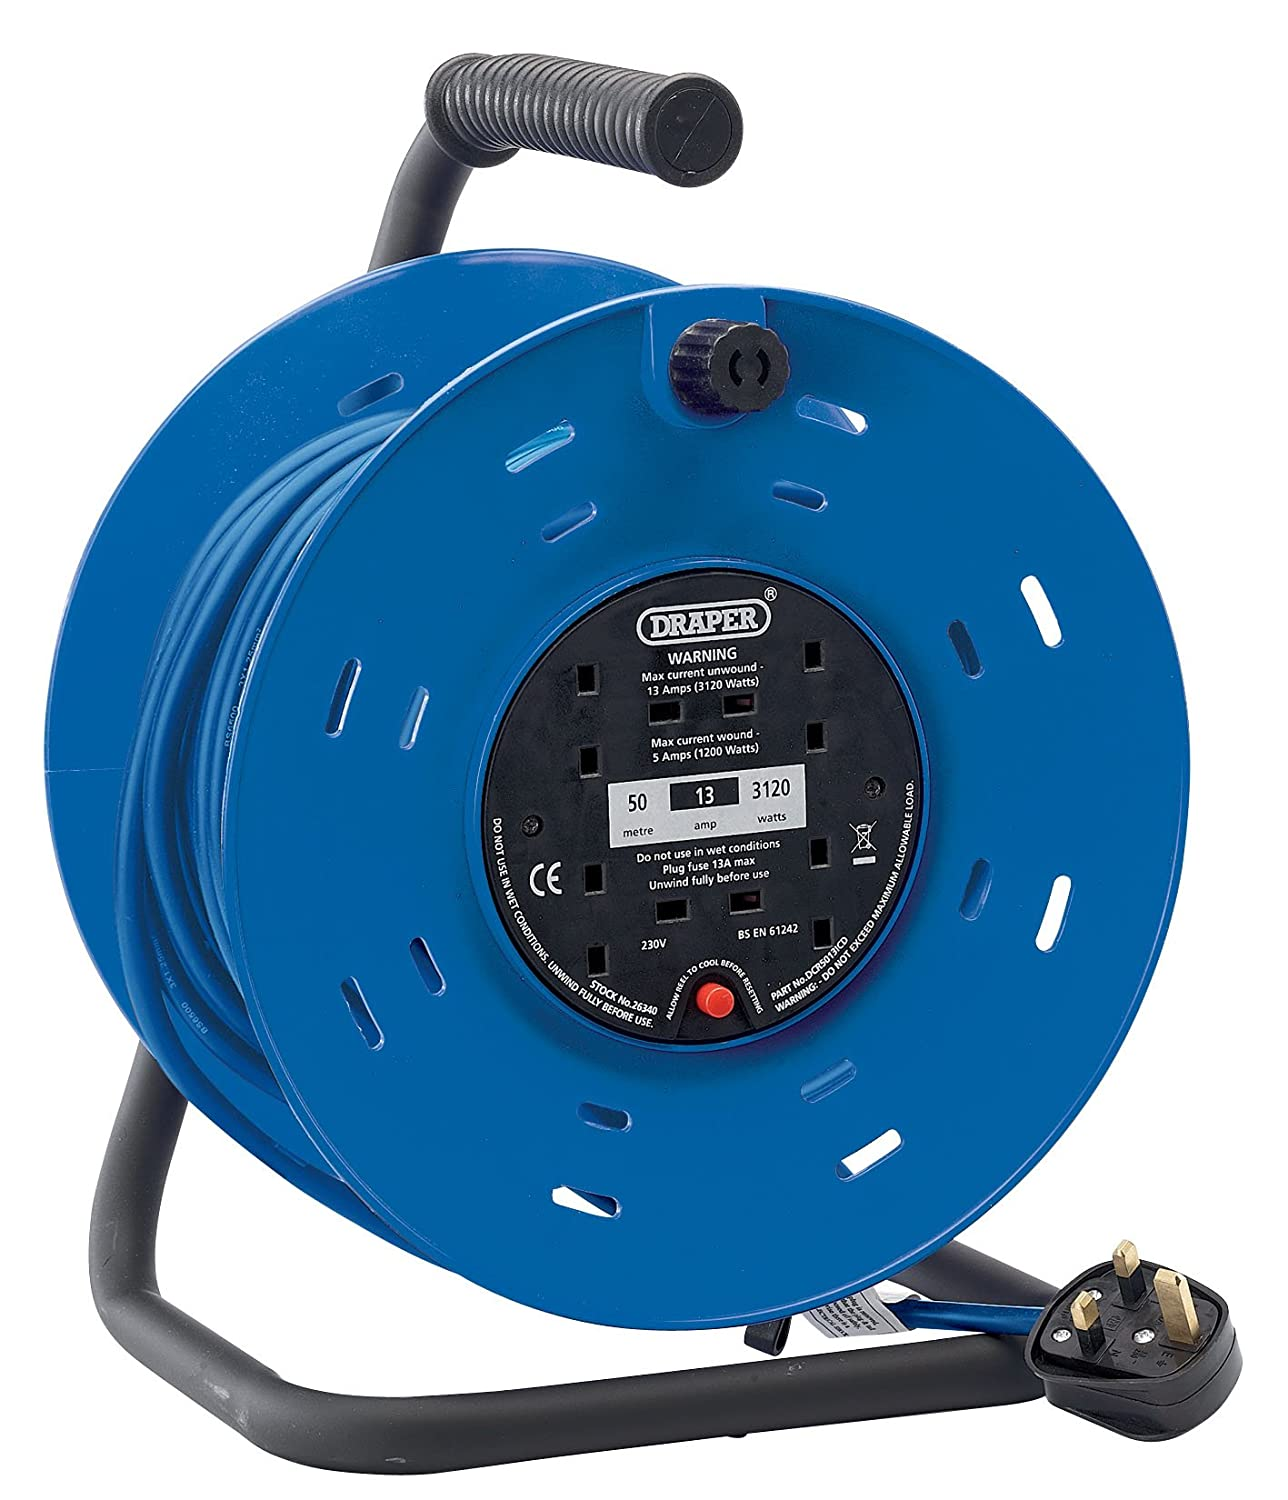 Draper 26342 25M 230V 4-Socket Industrial Cable Reel: Amazon.co.uk ...